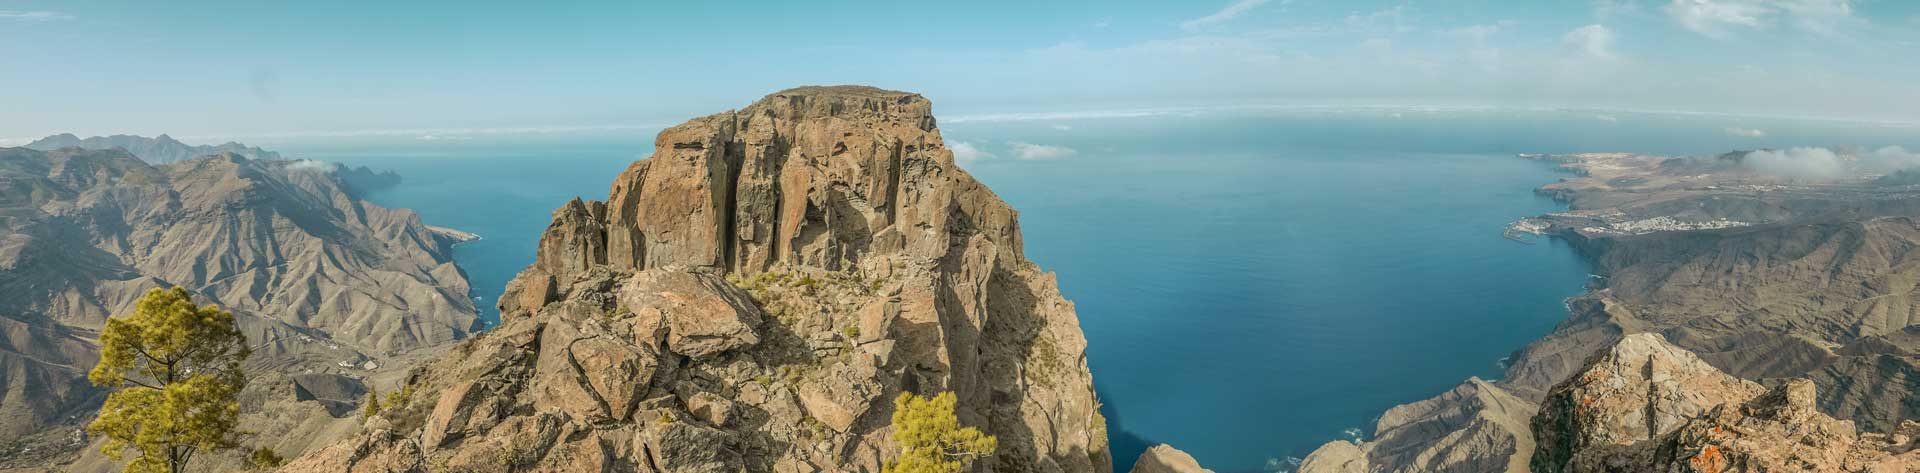 viewpoint-roque-faneque-gran-canaria